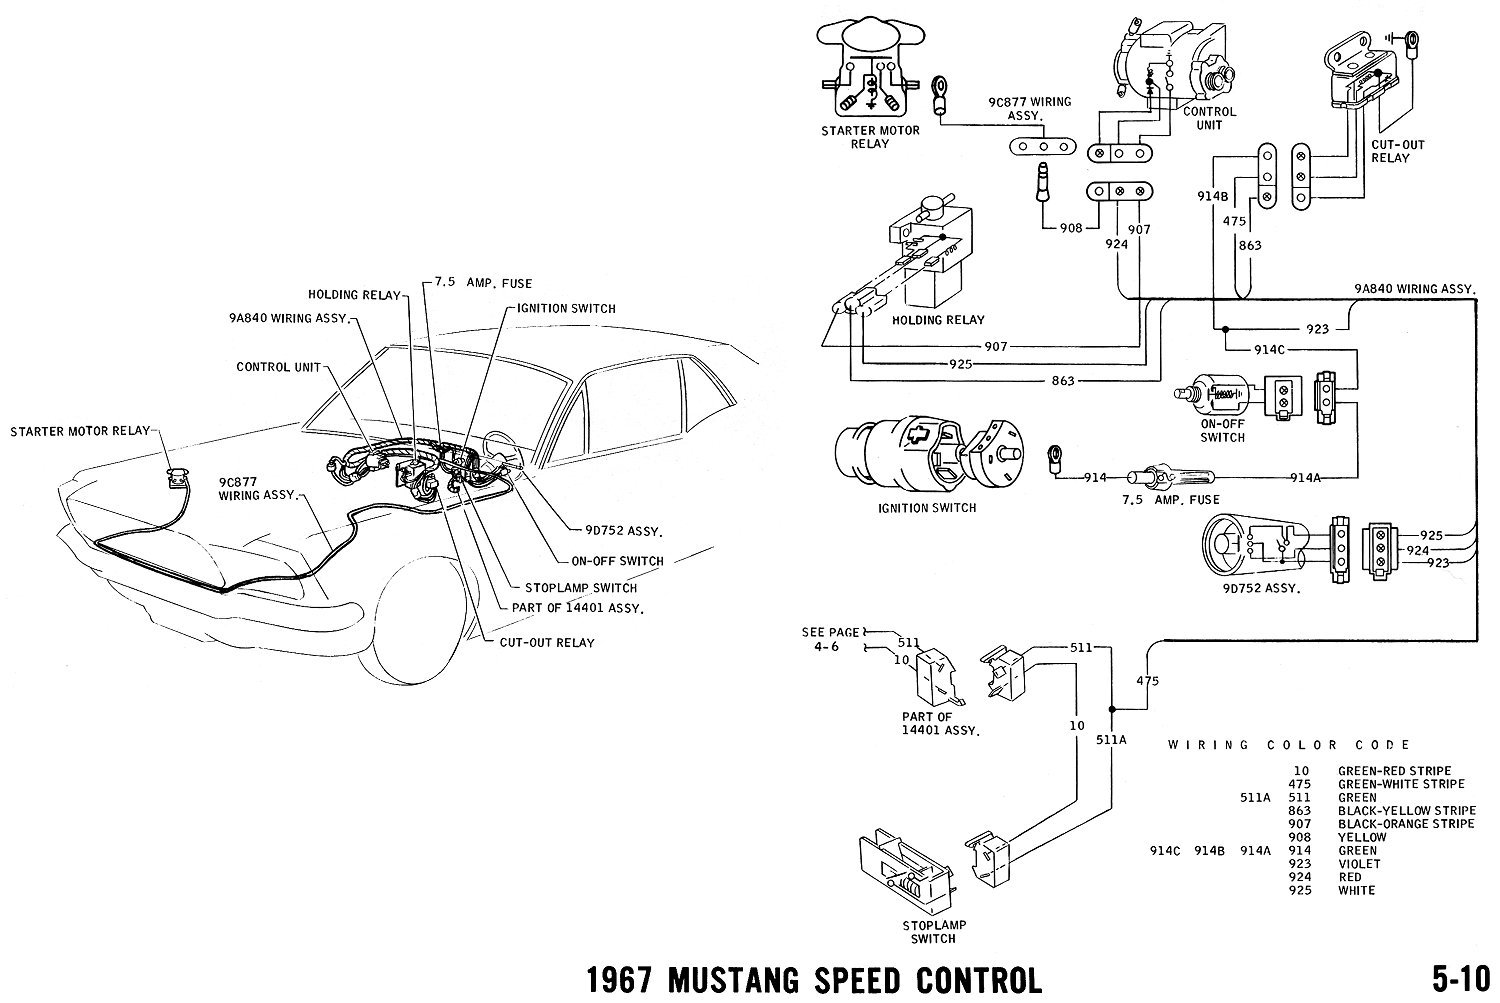 Atomic 4 Starter Wire Diagram Wiring Library Honda Engine 1 3 L 1967 Mustang And Vacuum Diagrams Average Joe